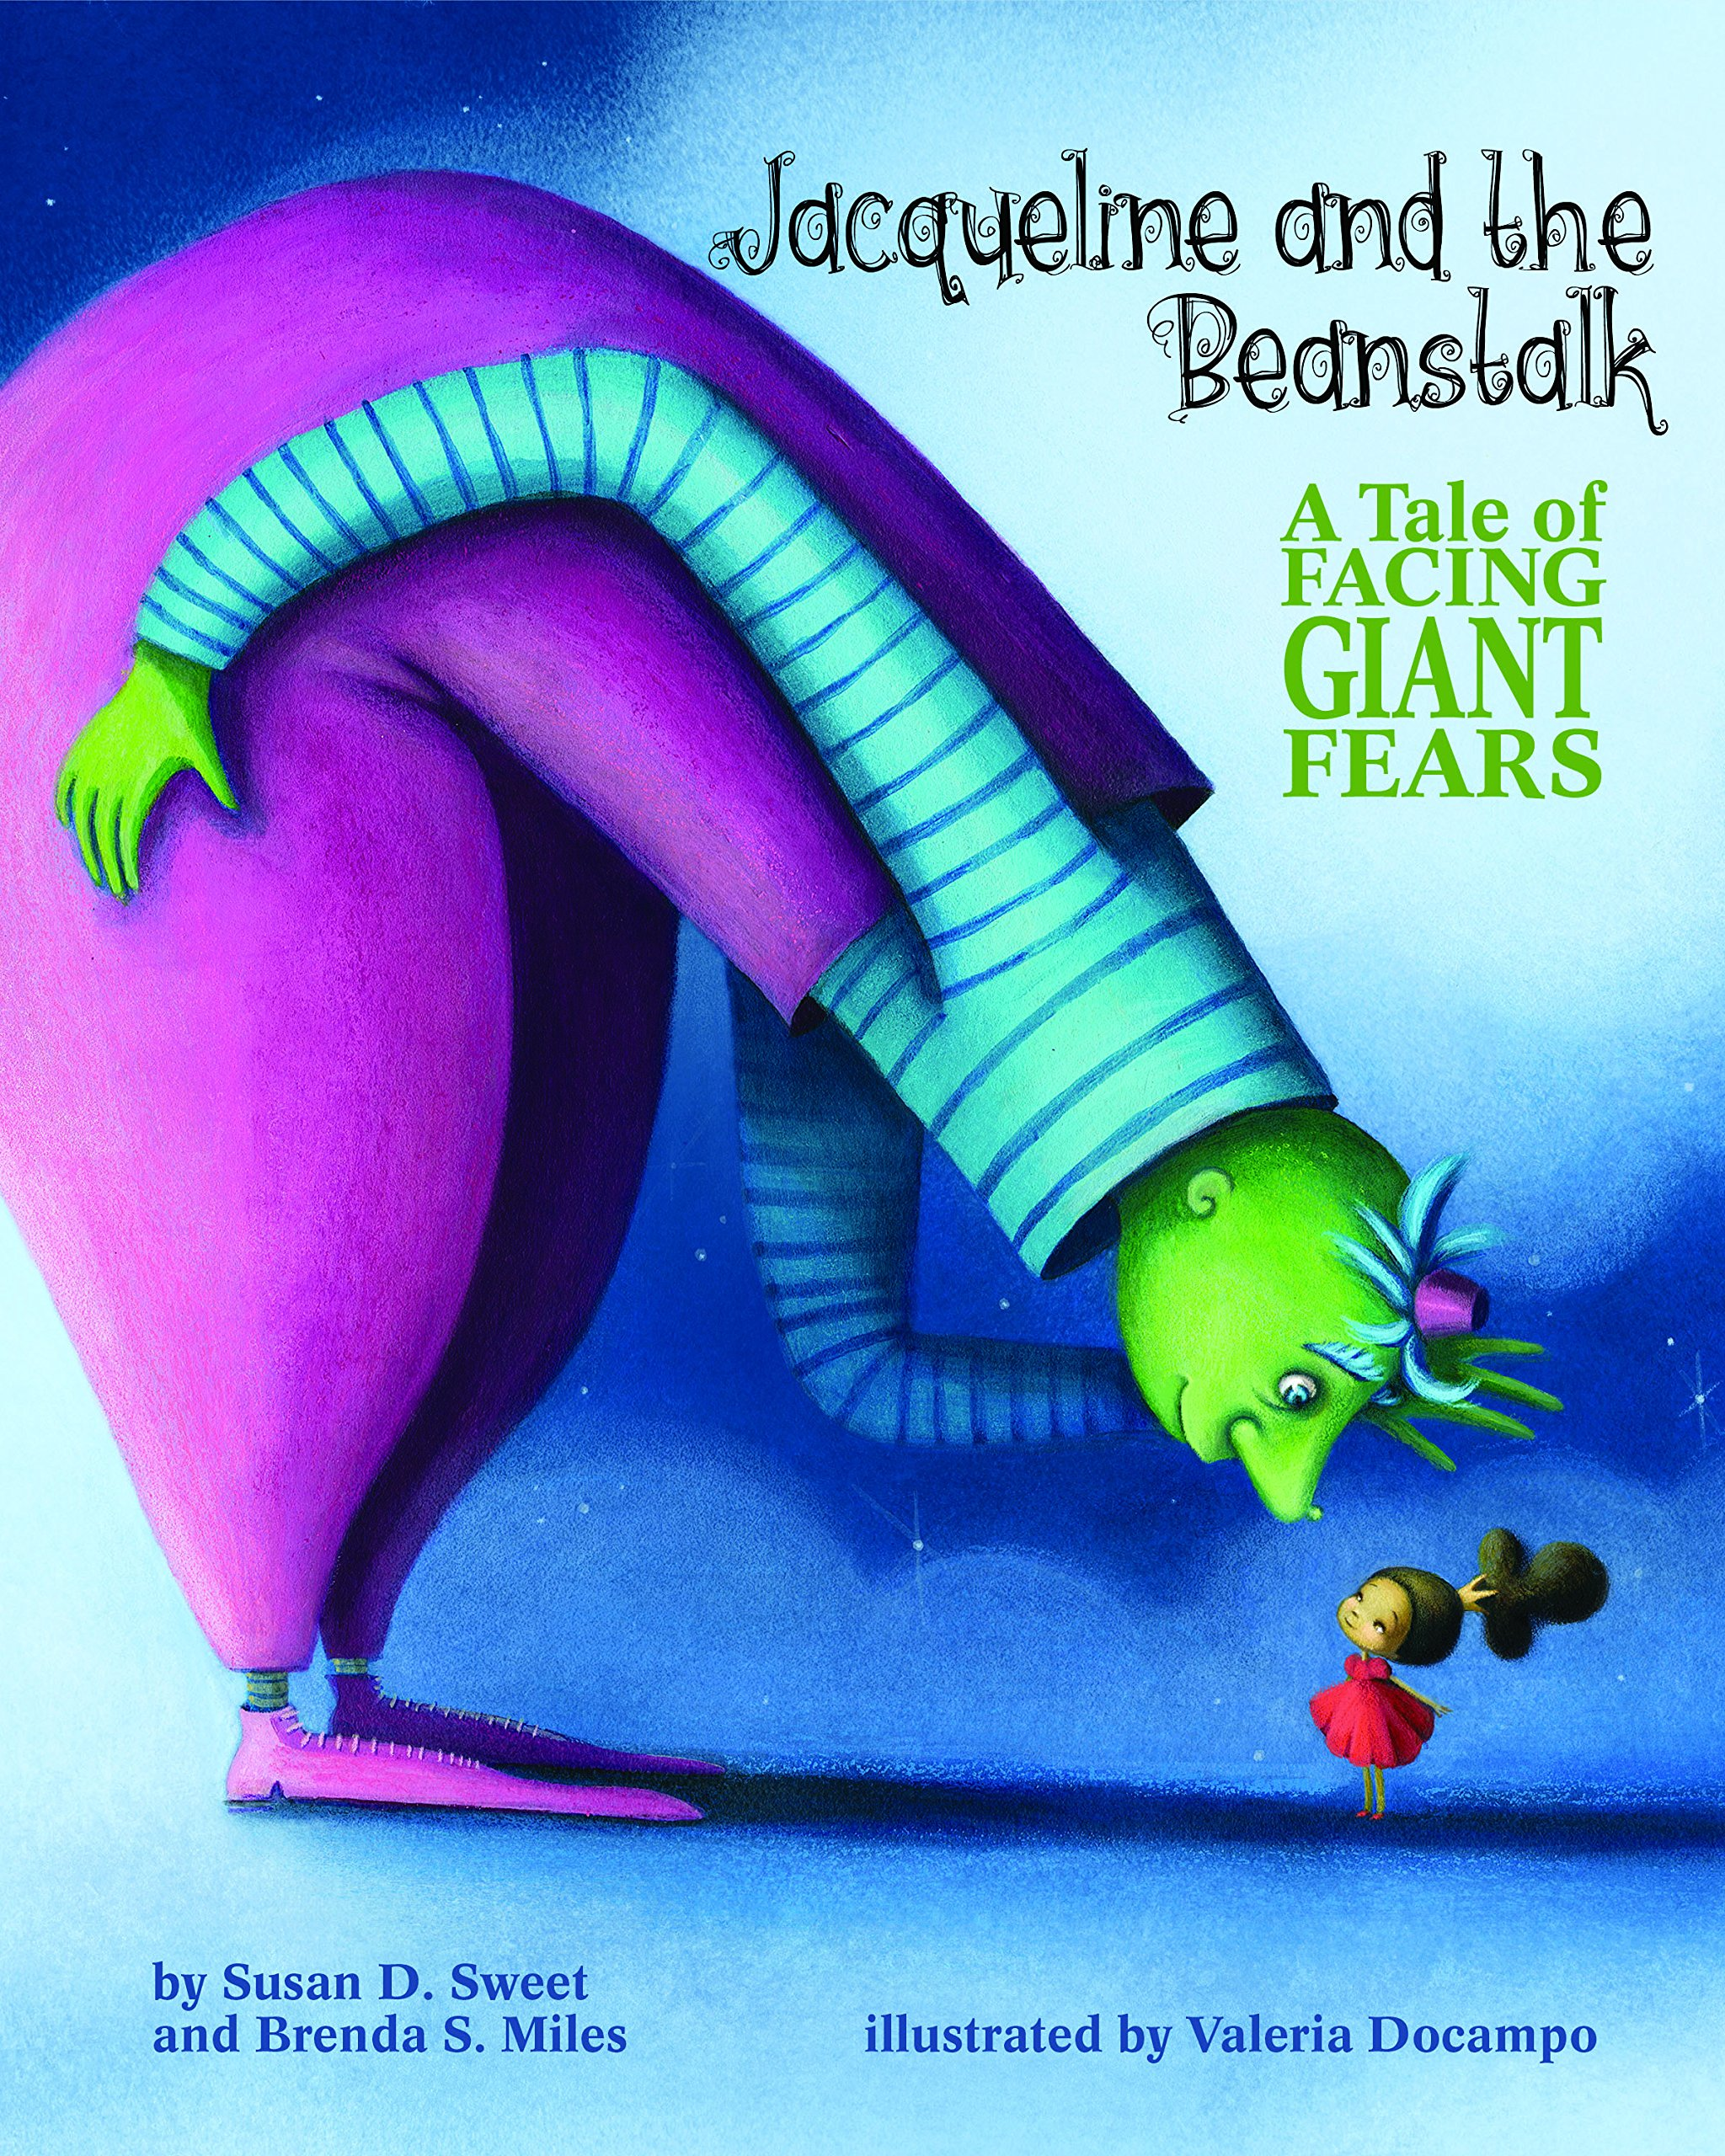 Jacqueline and the Beanstalk: A Tale of Facing Giant Fears (Classic Tales for Modern Kids)